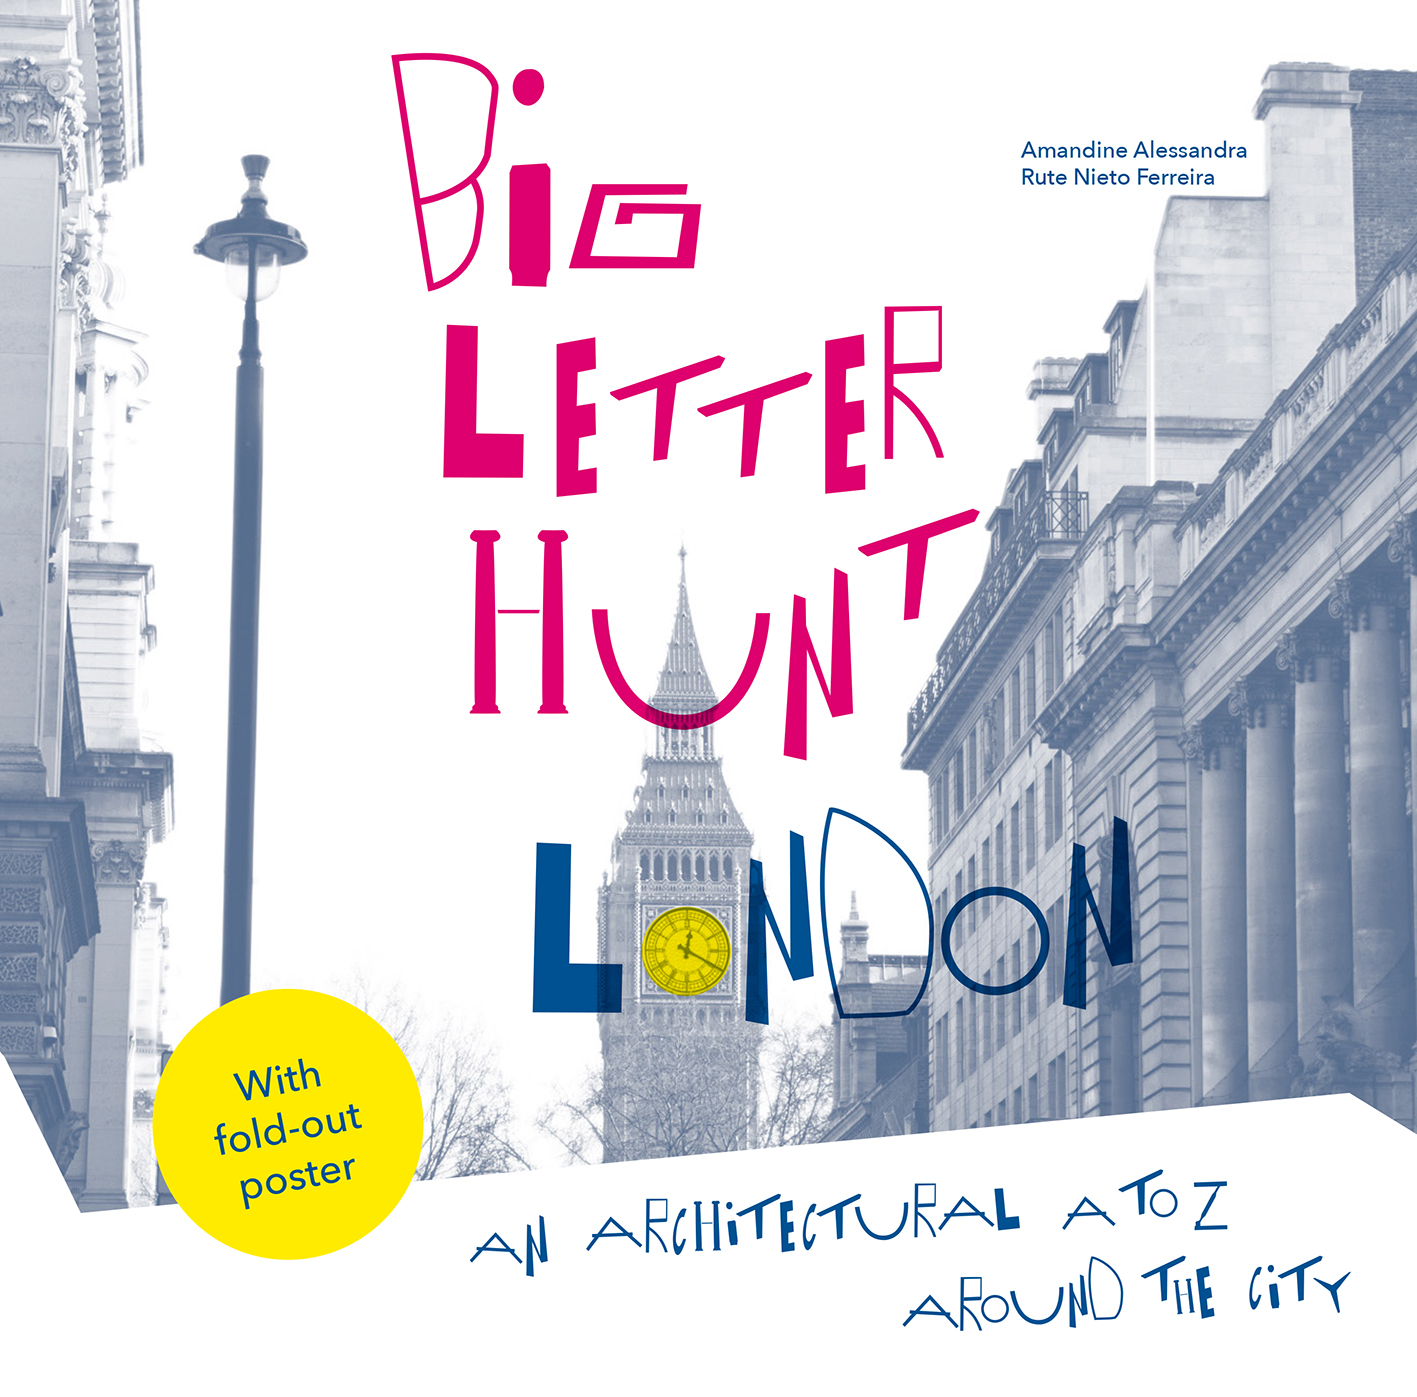 The Big Letter Hunt: London